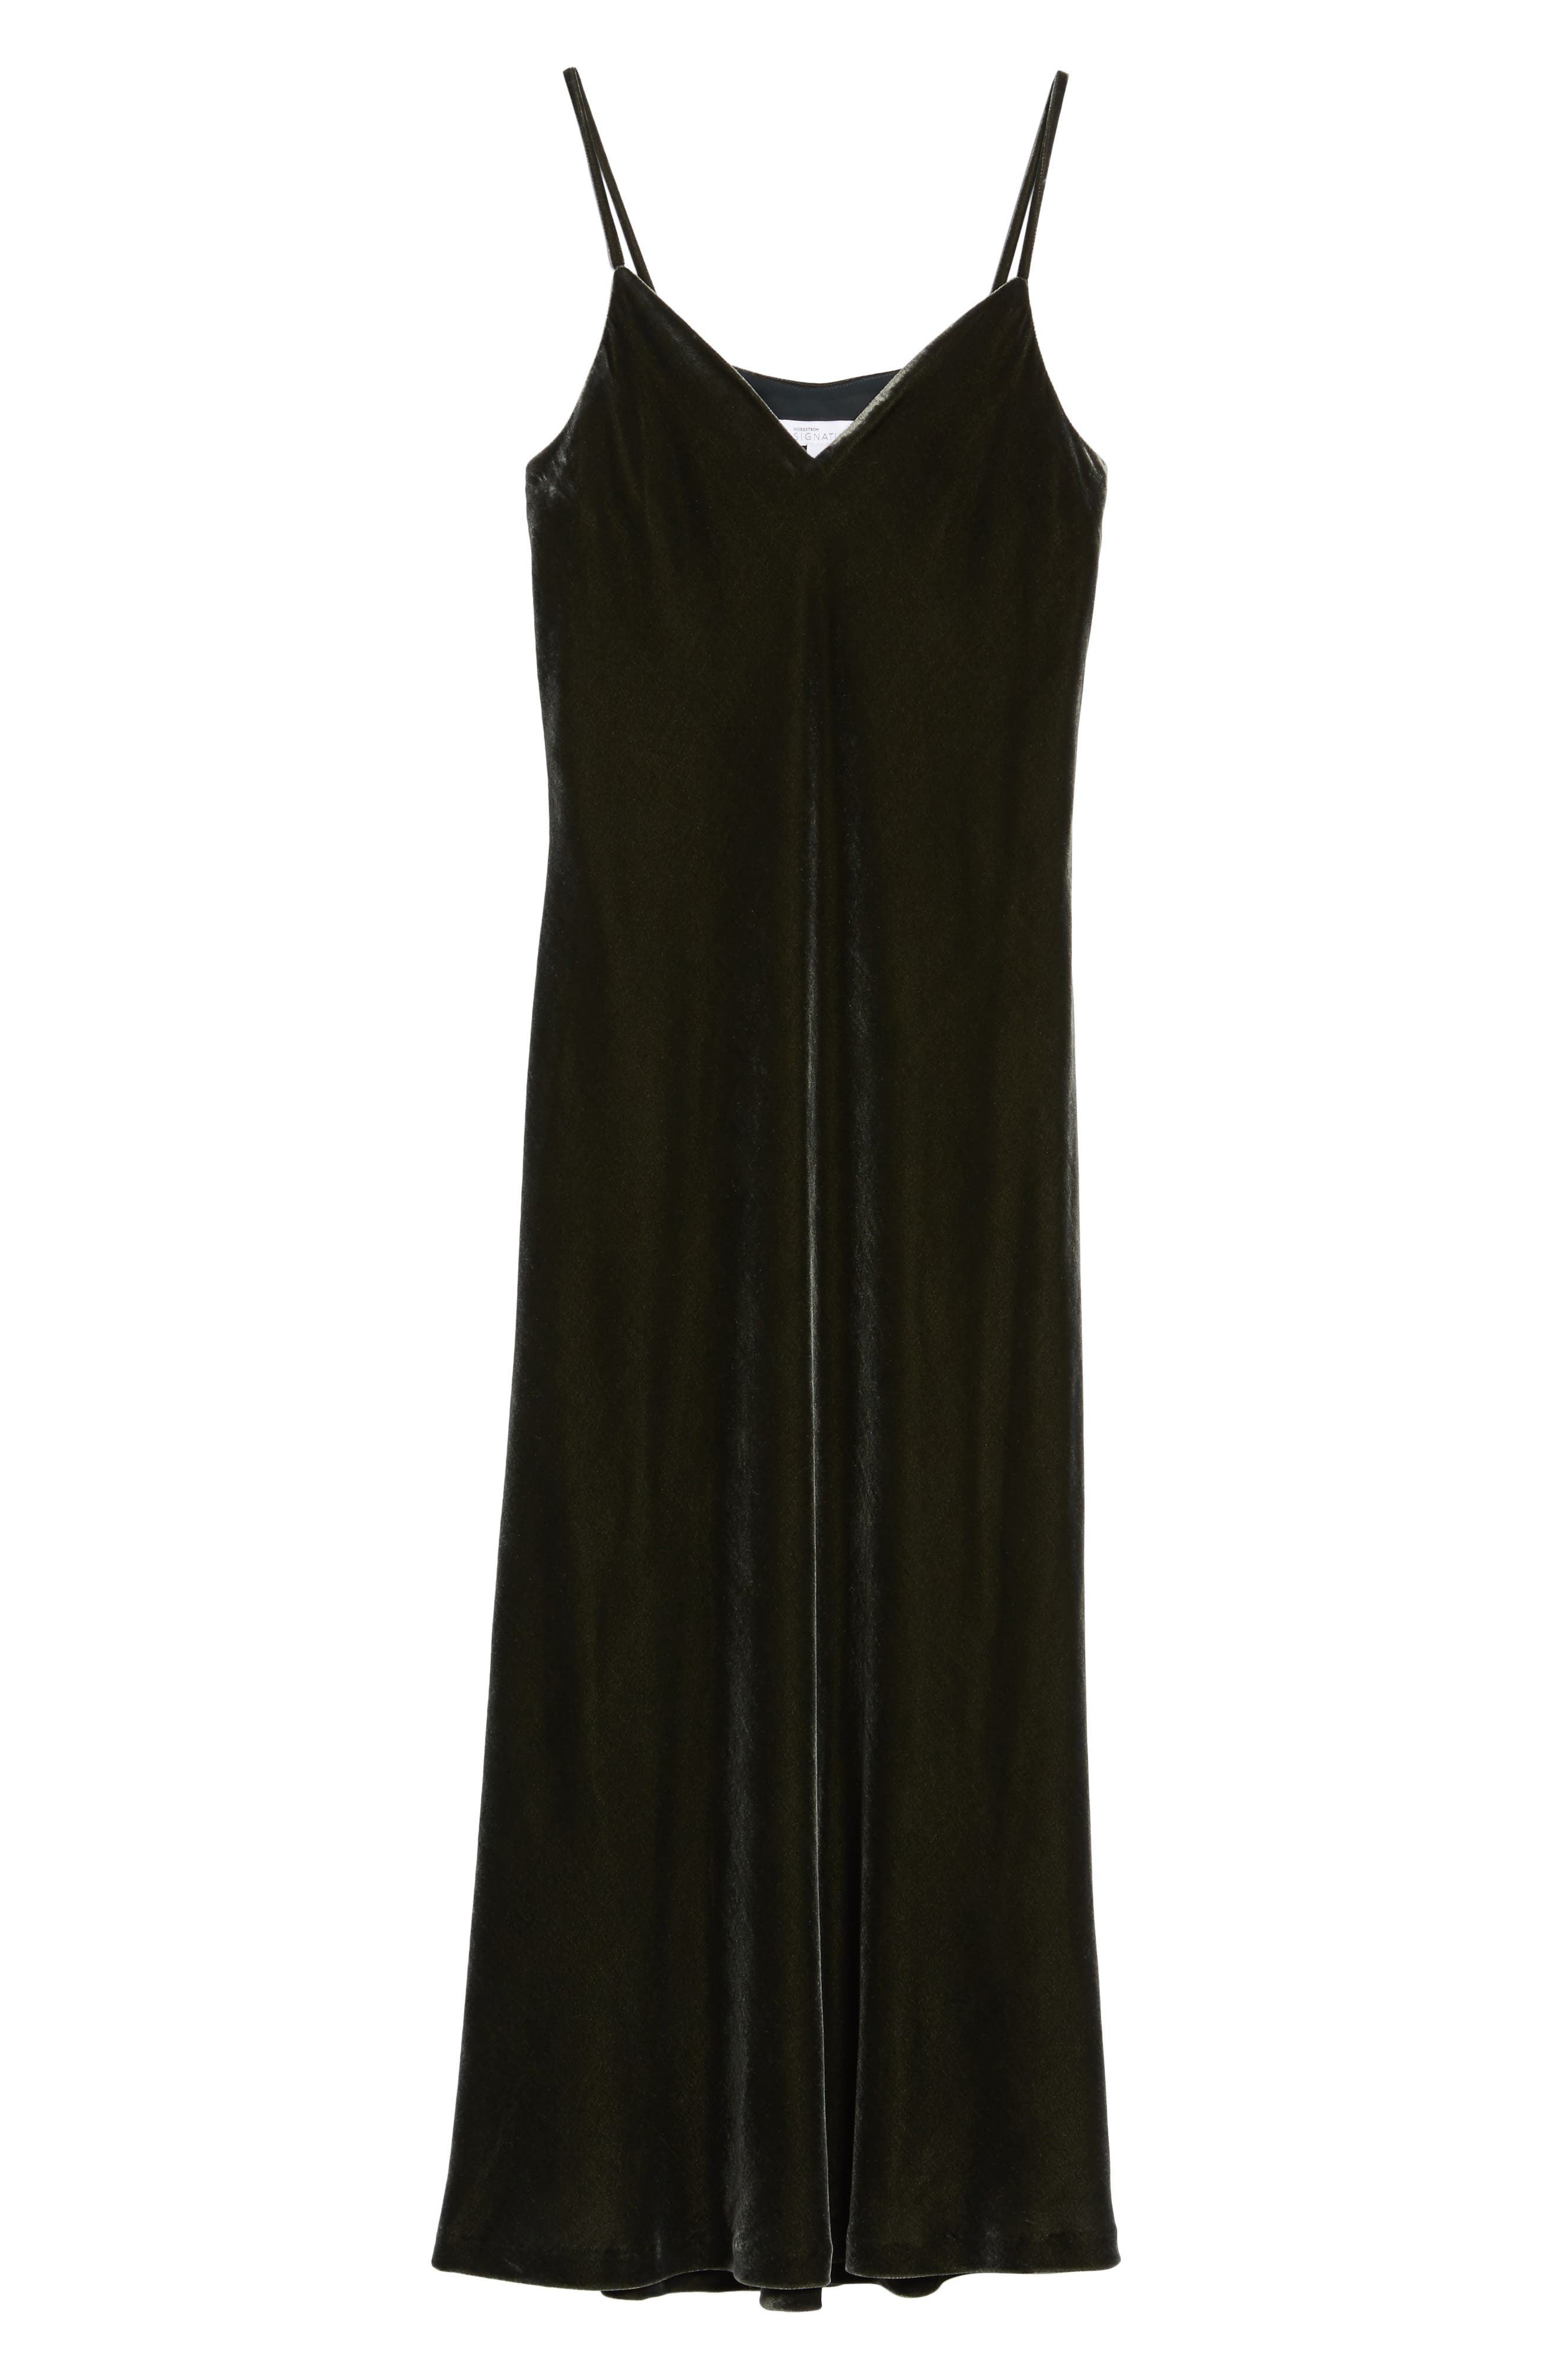 Velvet Slipdress,                             Alternate thumbnail 6, color,                             Olive Sarma